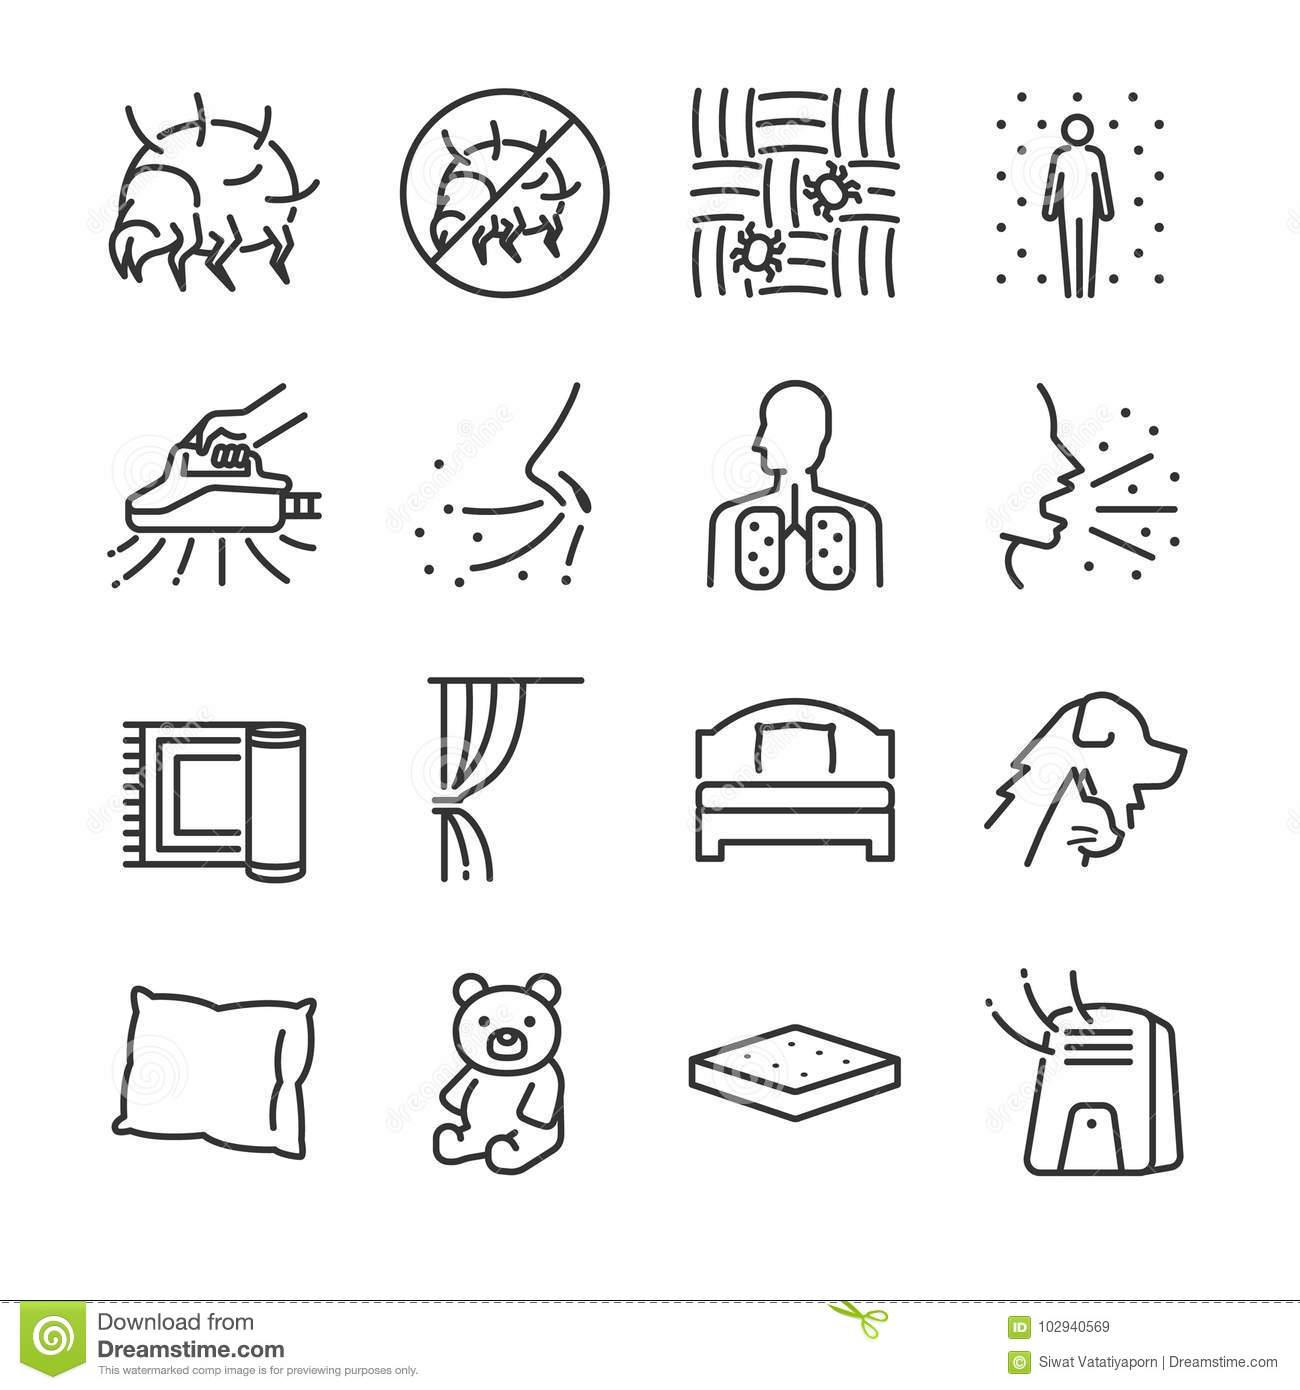 Dust mites line icon set. Included the icons as dust mites, flea, bed bugs, bedroom, bed, bugs killer and more.